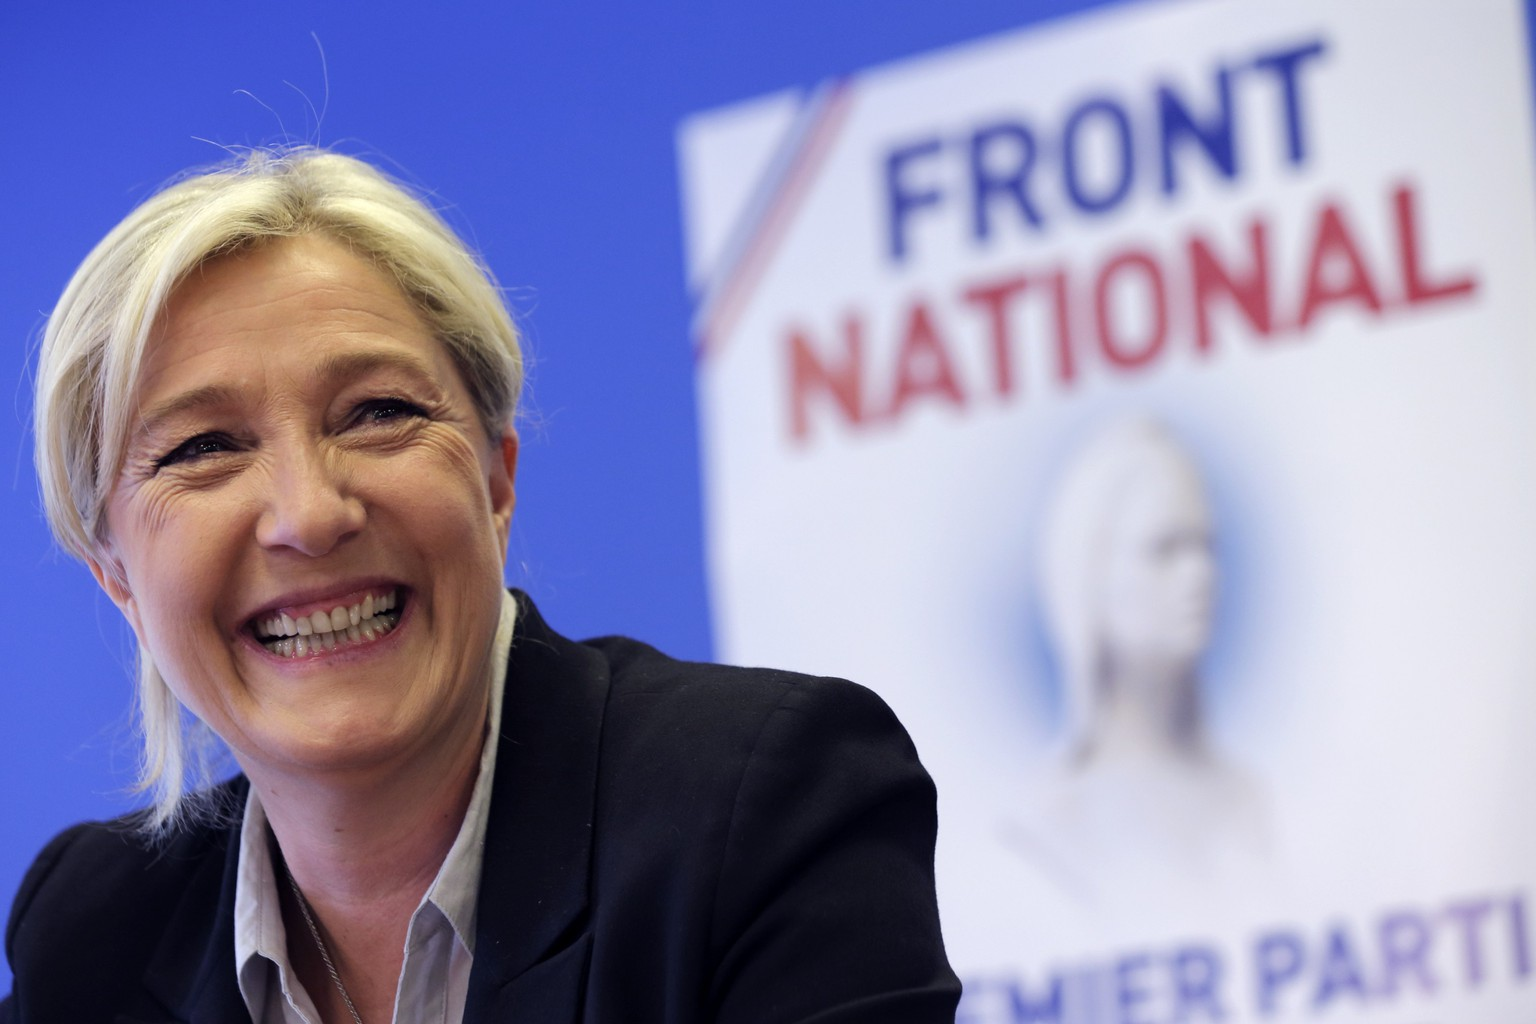 Marine Le Pen, France's National Front political party head, attends a news conference at the party's headquarters in Nanterre, near Paris, May 27, 2014. France's prime minister on Monday called the breakthrough by Marine Le Pen's anti-immigration, anti-euro National Front, which topped a national vote for the first time and pushed his Socialists into third place, a political